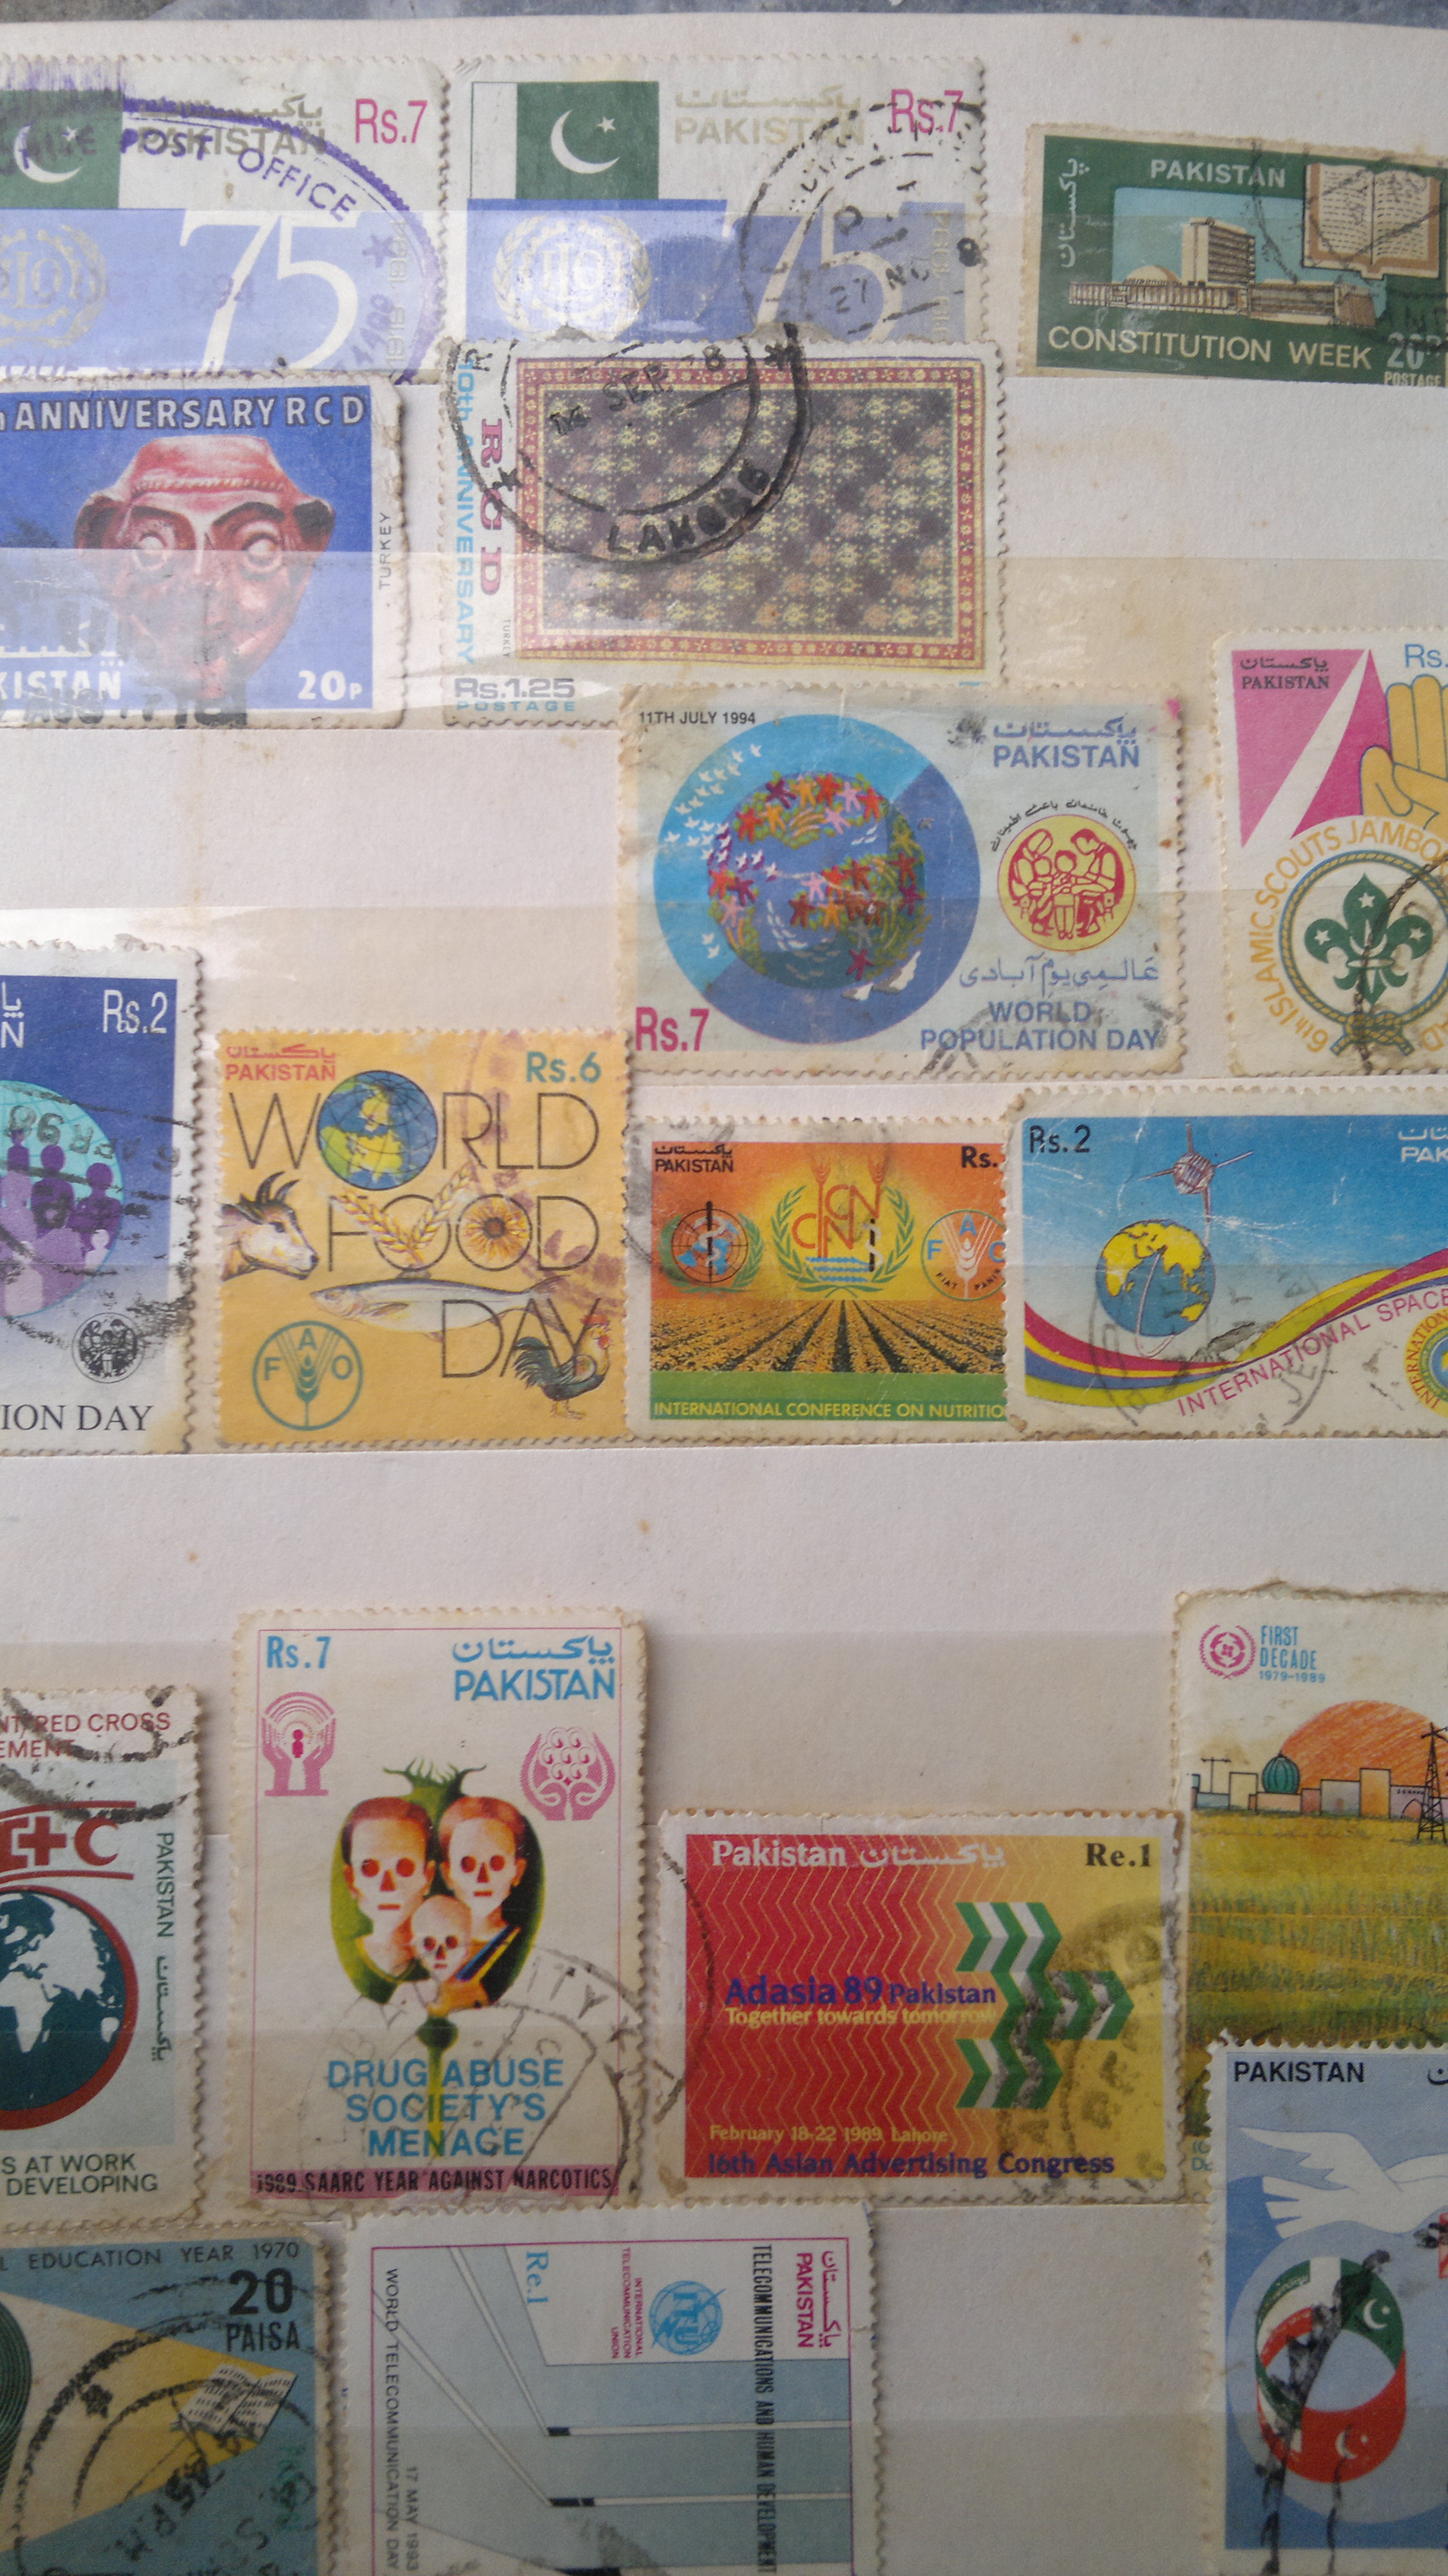 stamps featuring different international organizations and programs